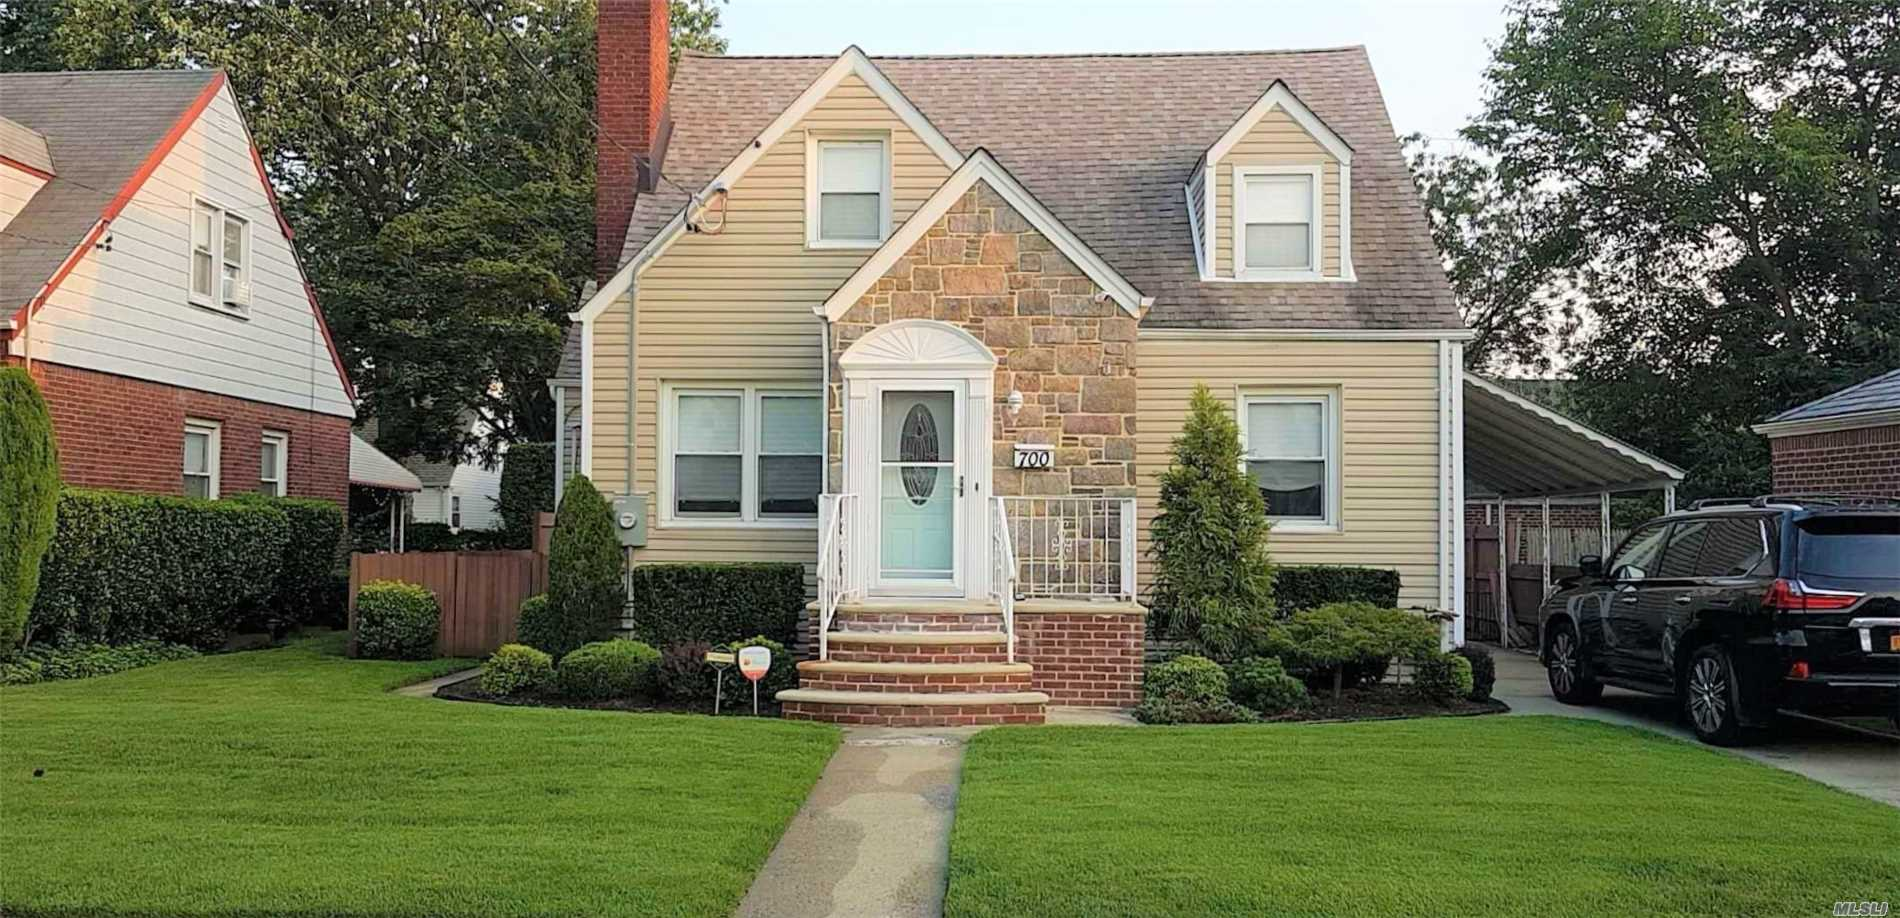 Beautifully Renovated 3 Br Cape Property. Conveniently And Quietly Lifestyle. Next To Stewart Manor Elementary School. 6 Mins Drive To H Frank Carey High School. 10 Mins Walk To New Hyde Park Port Jefferson Branch Lirr Station. 9 Mins Walk To Stewart Manor Hempstead Branch Lirr Station. Master Bedroom With Large Walk-In Closet, Beautiful Eik, Large Dining Room, Stone Fireplace, Wave Air Purification System, New Roof, New Boiler And Much More. Move In Ready. Bring Your Buyers!!!